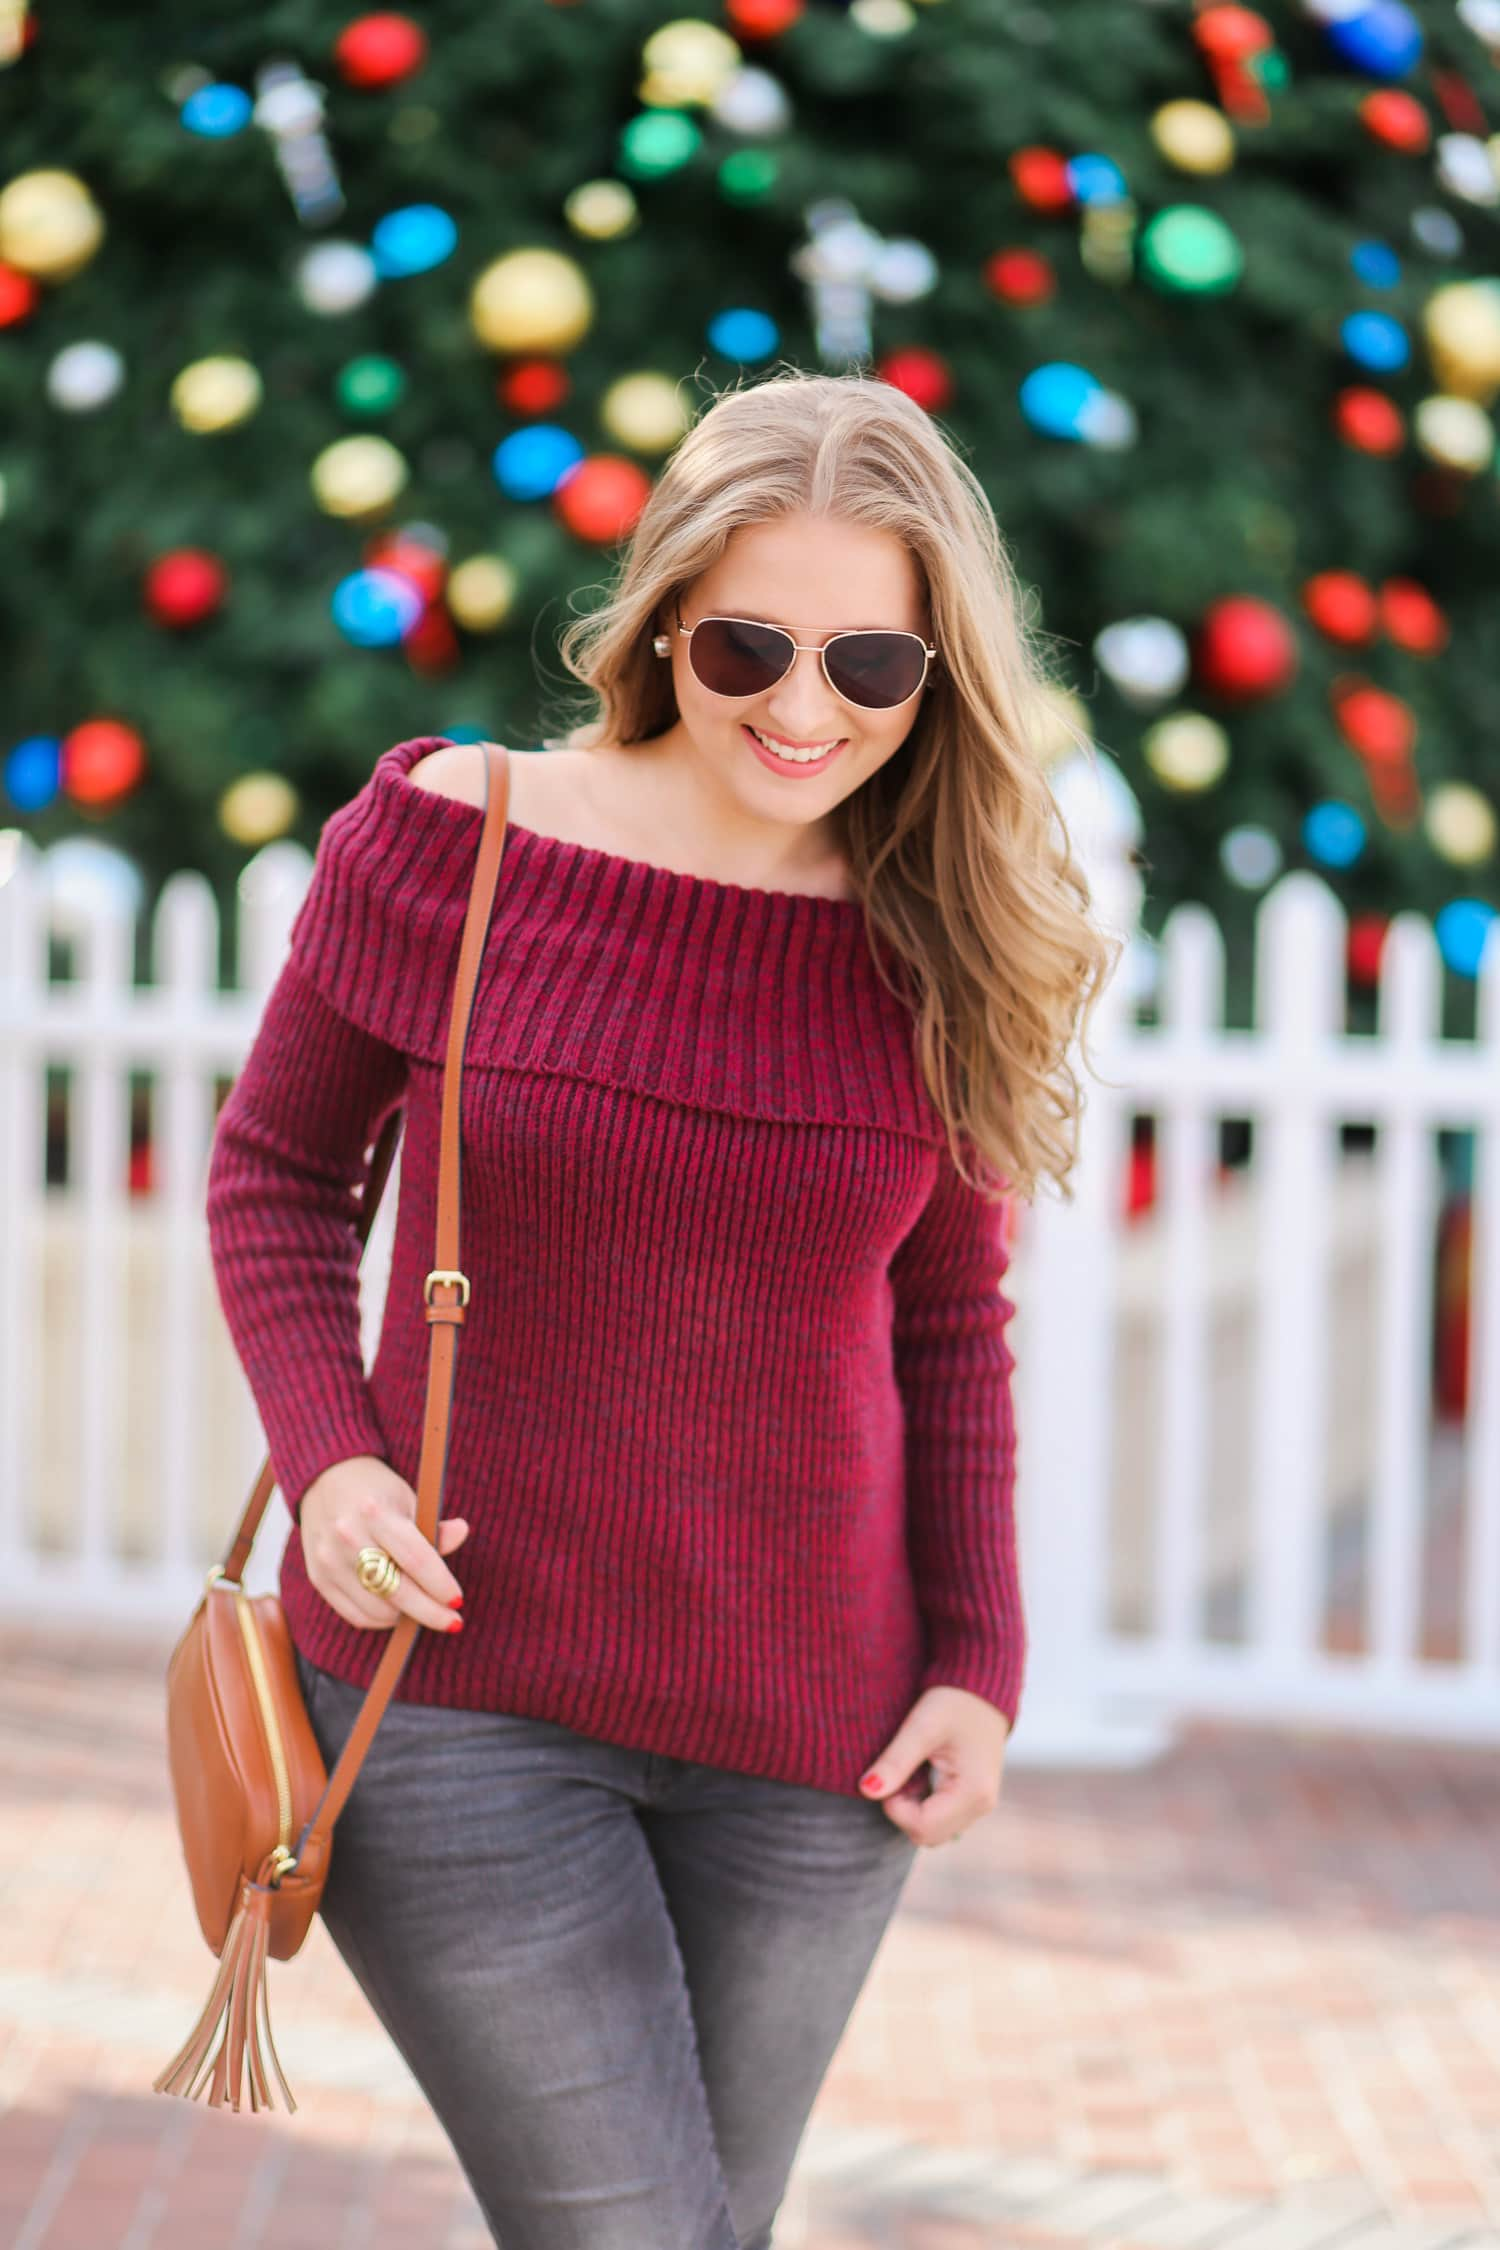 casual-winter-outfit-off-the-shoulder-sweater-gray-jeggins-moto-boots-foster-grant-rose-gold-aviator-sunglasses-7687-2